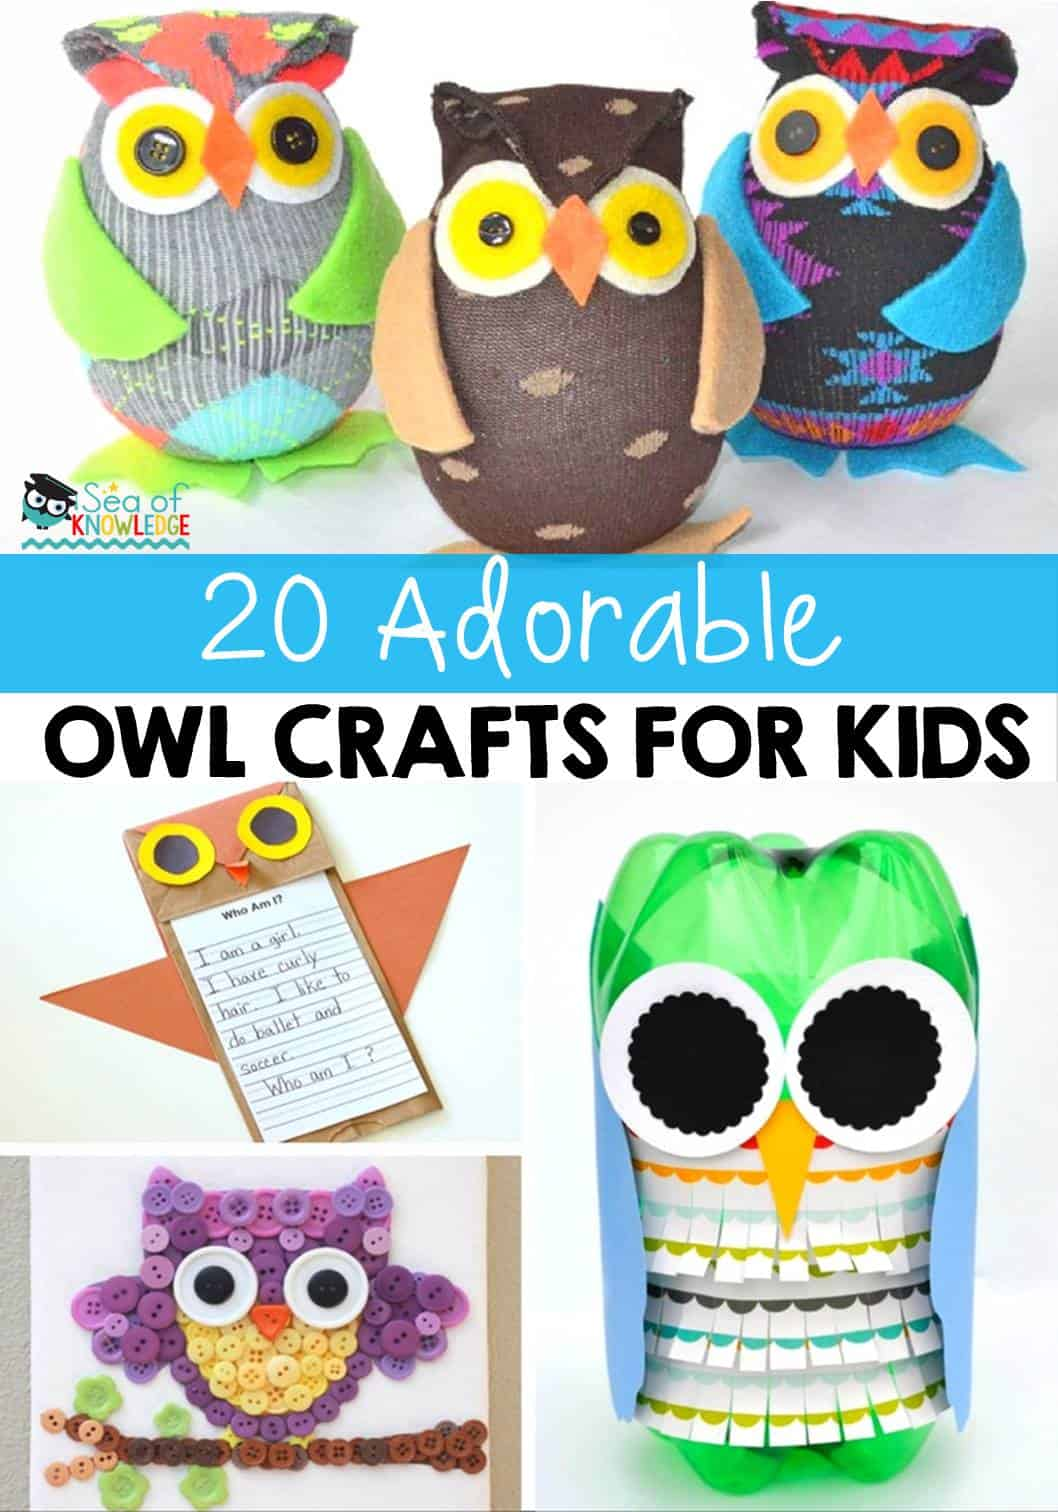 20 Adorable Owl Crafts For Kids